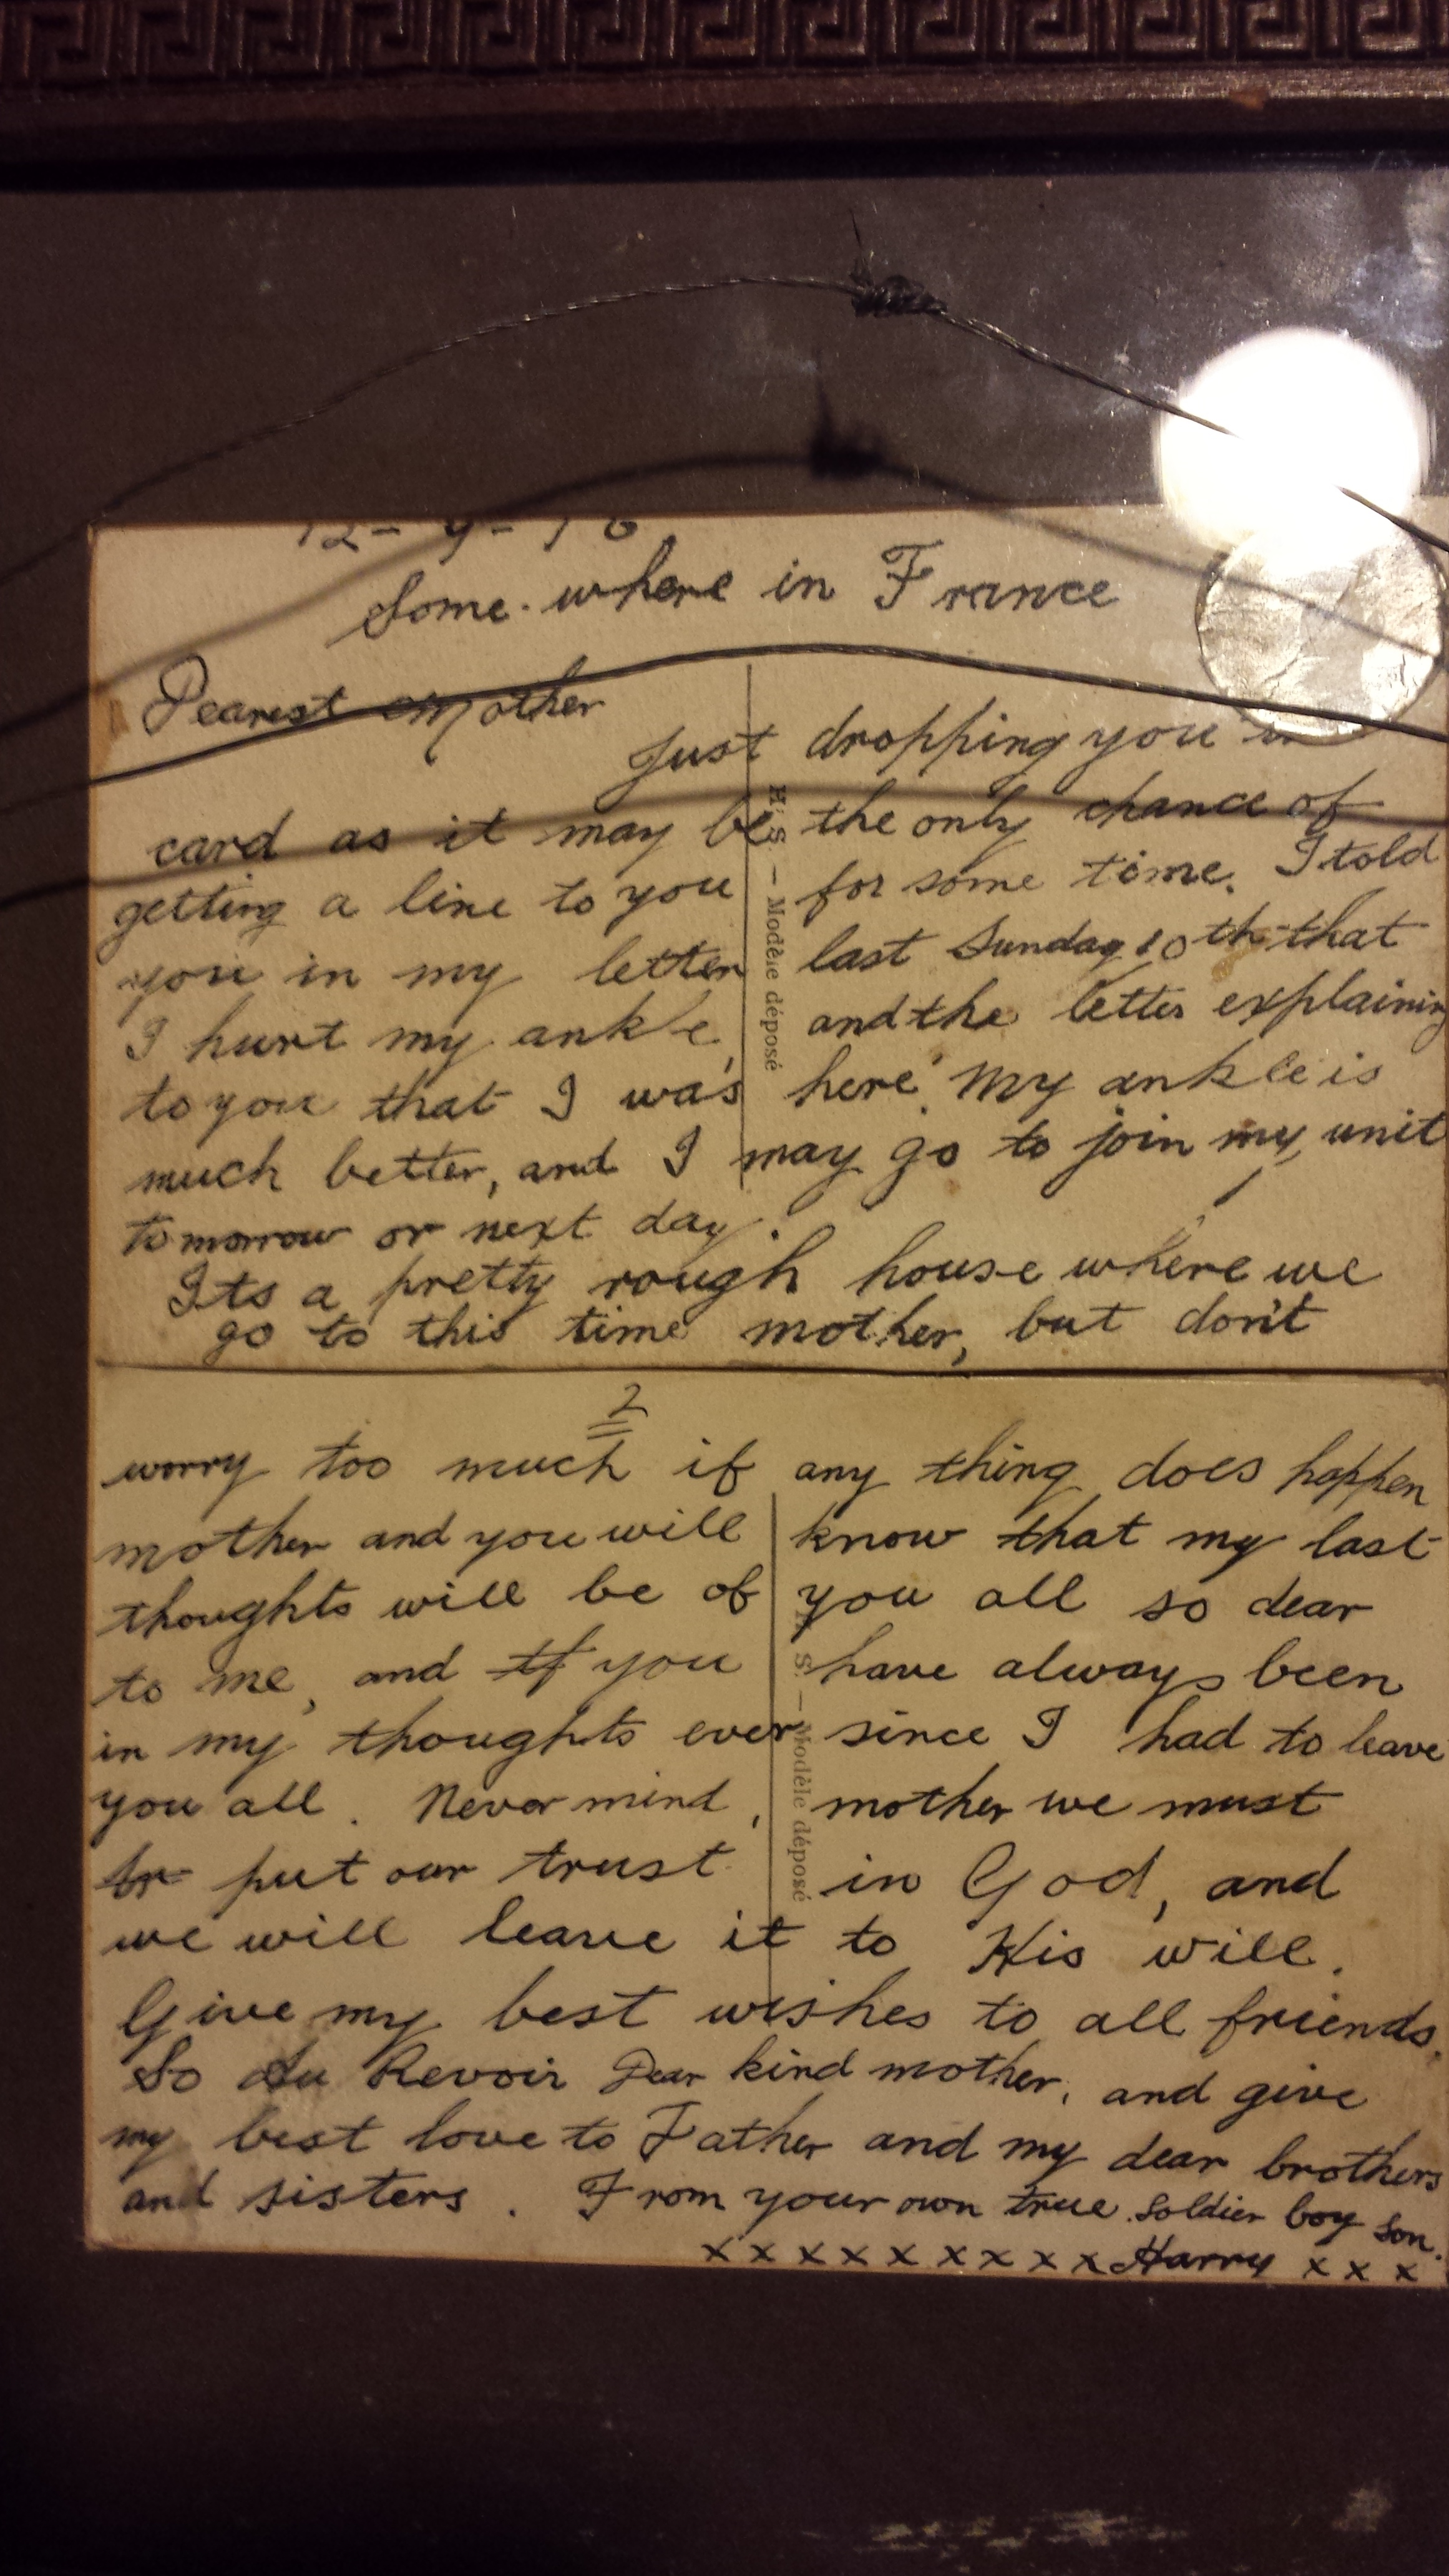 Card written from the Somme by Henry James Faull to his mother- see transcription above